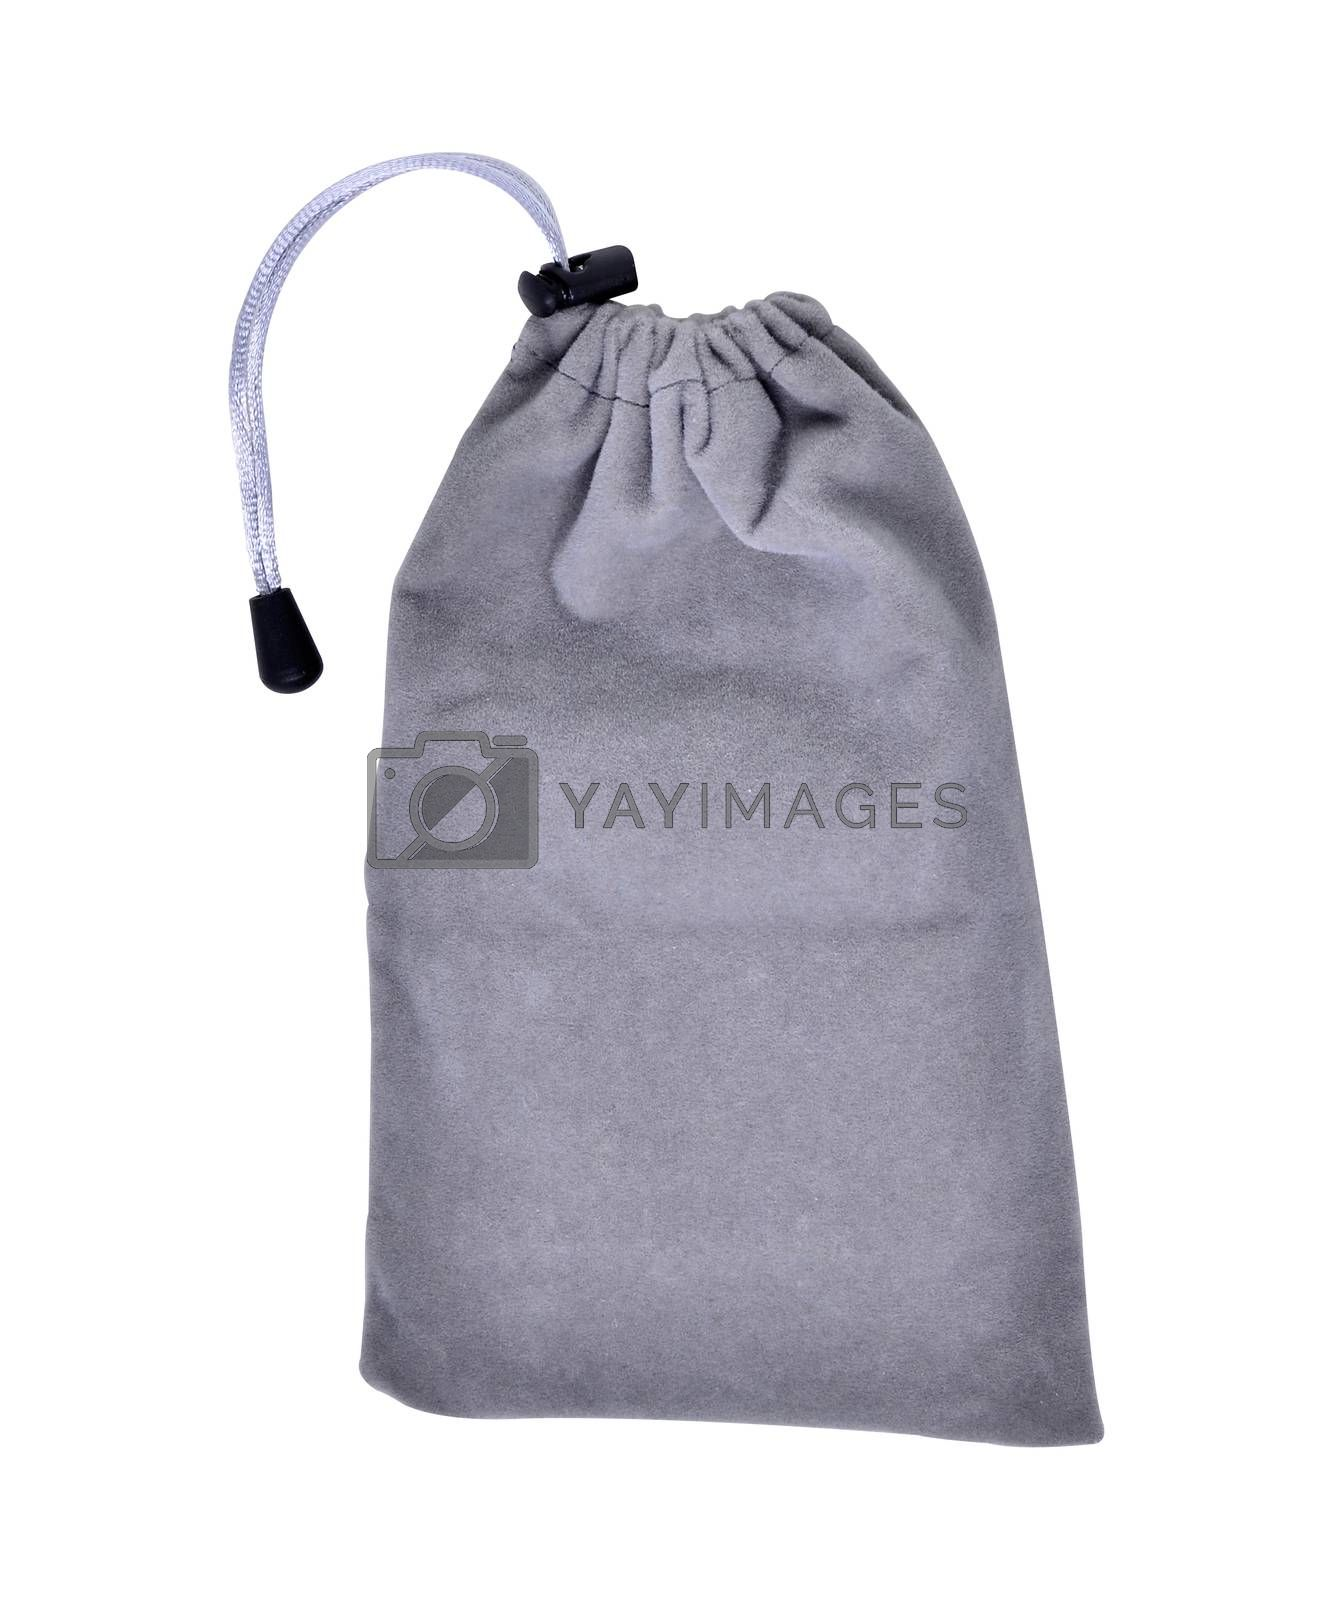 Grey Bags White Rope Fabric Isolated on White Background Clipping Path